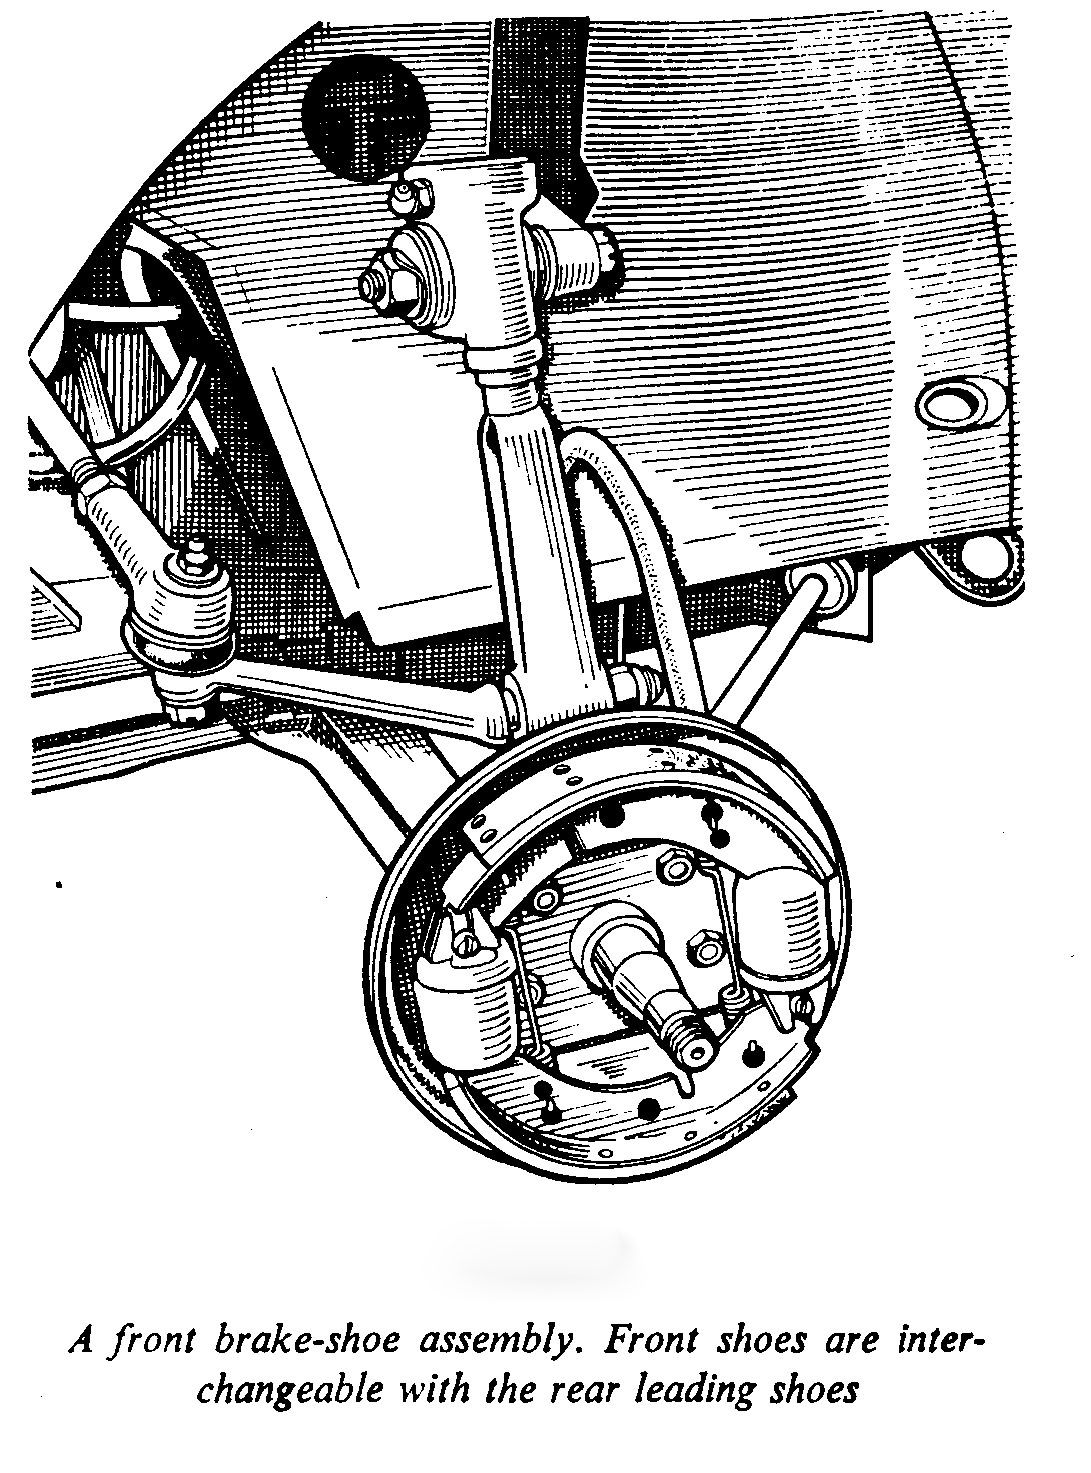 96 Chevy Truck Front Suspension Diagram